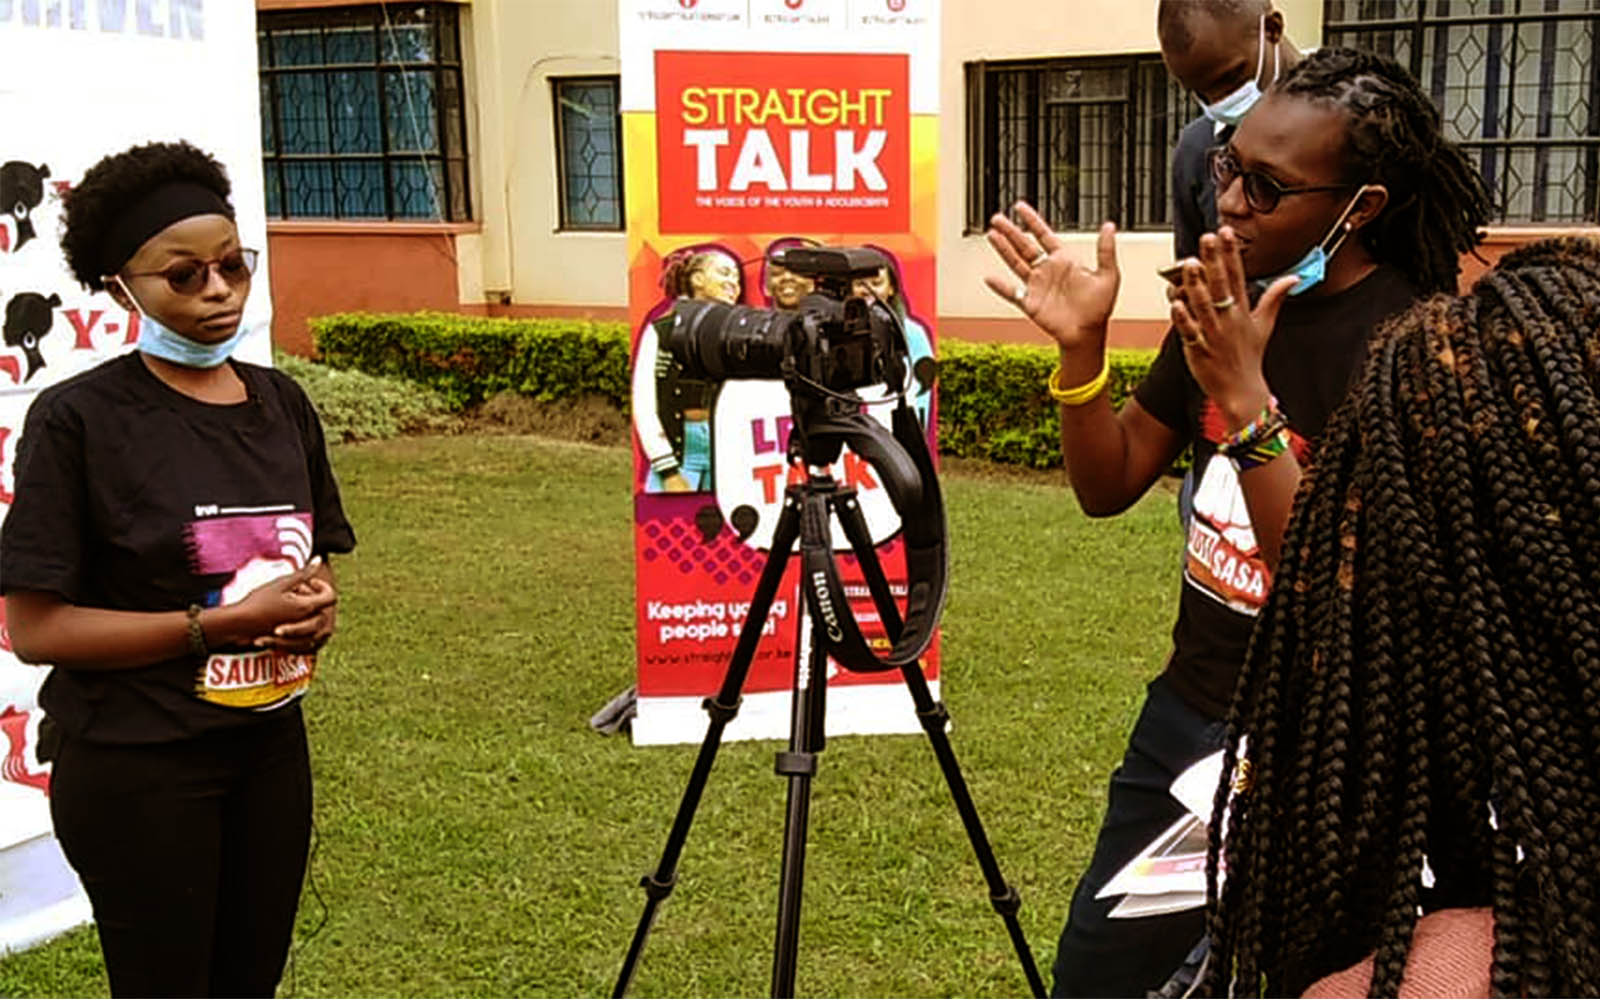 Straight Talk Partners With Sauti Sasa Youth Movement To Launch Youth Voices Report on Teenage pregnancy